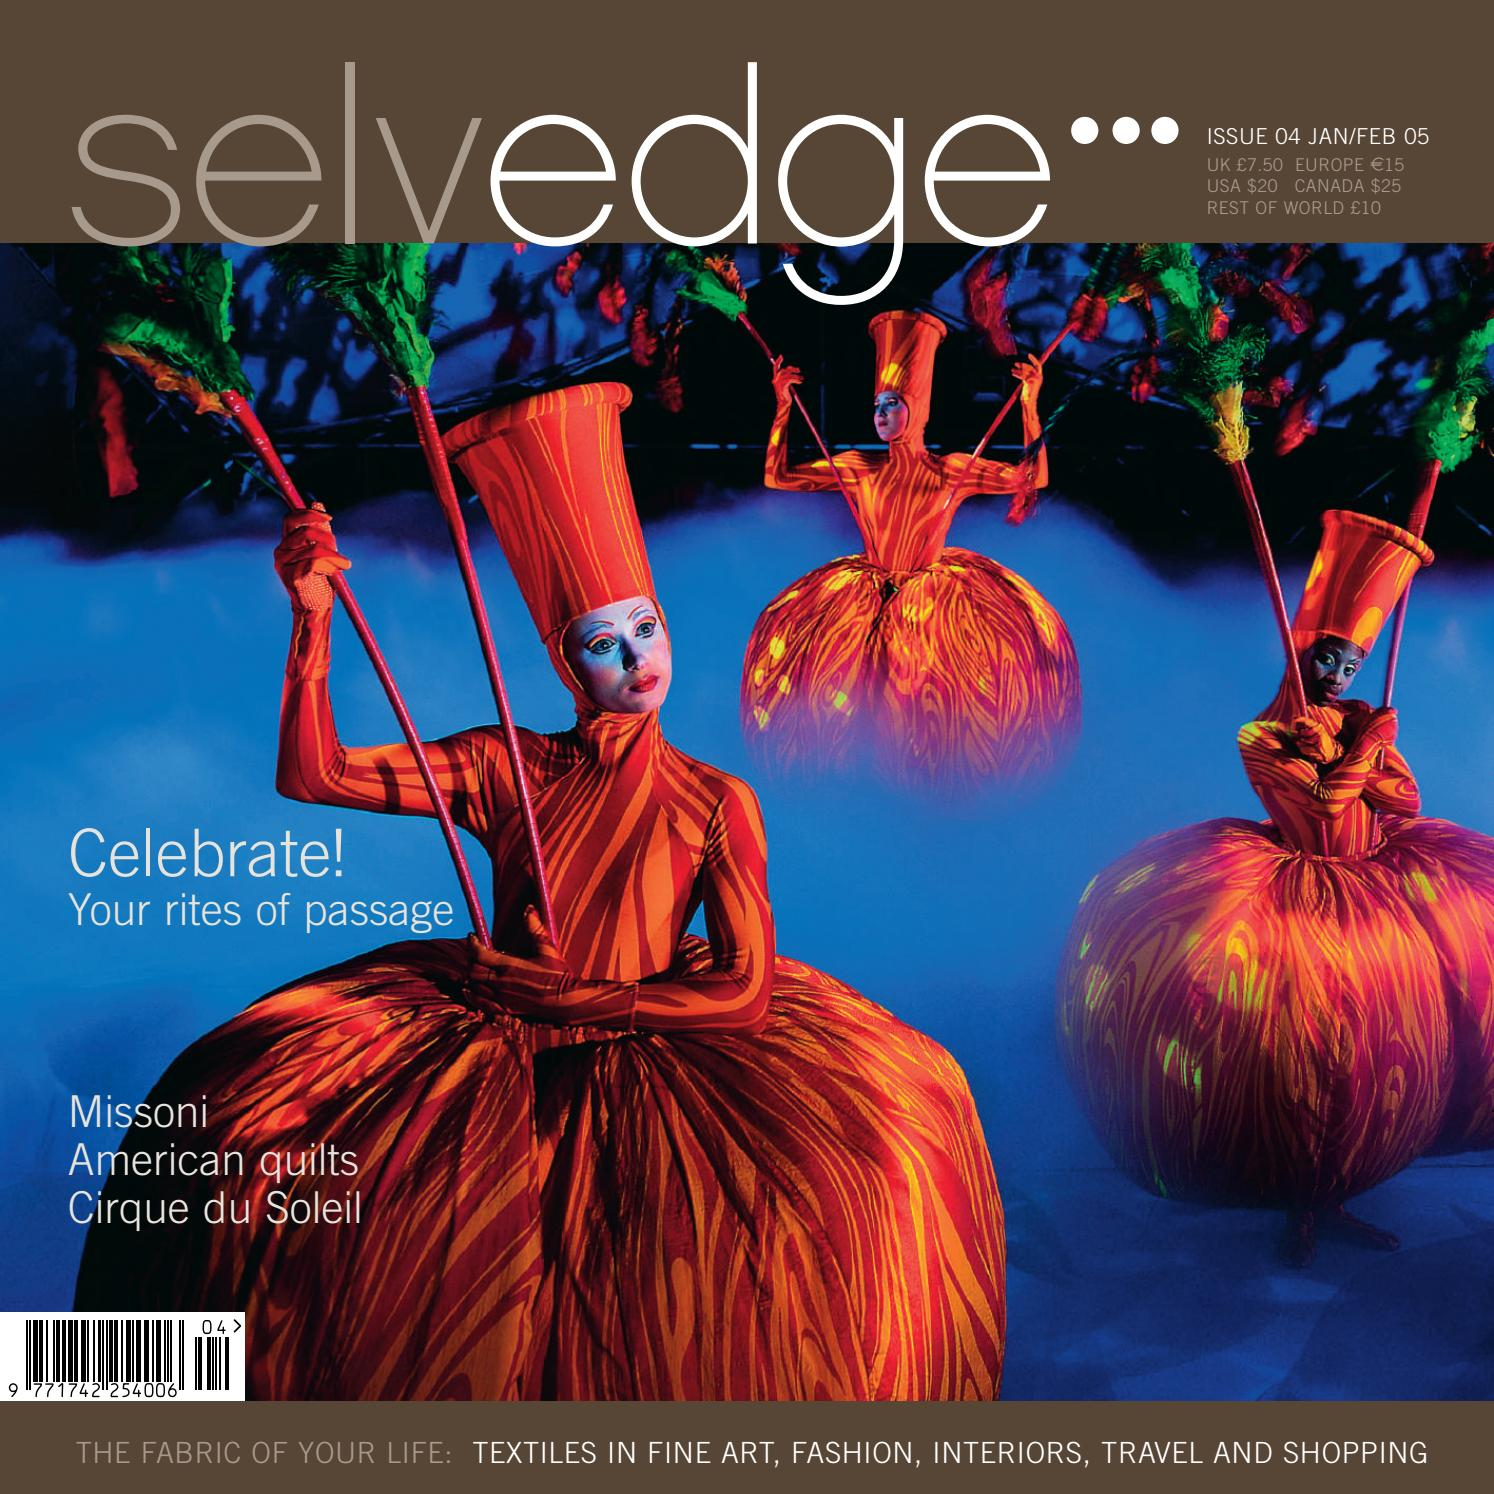 makeup artist jobs salary canada saubhaya makeup how long does it take to become an interior designer 04 Celebrate by Selvedge Magazine - issuu